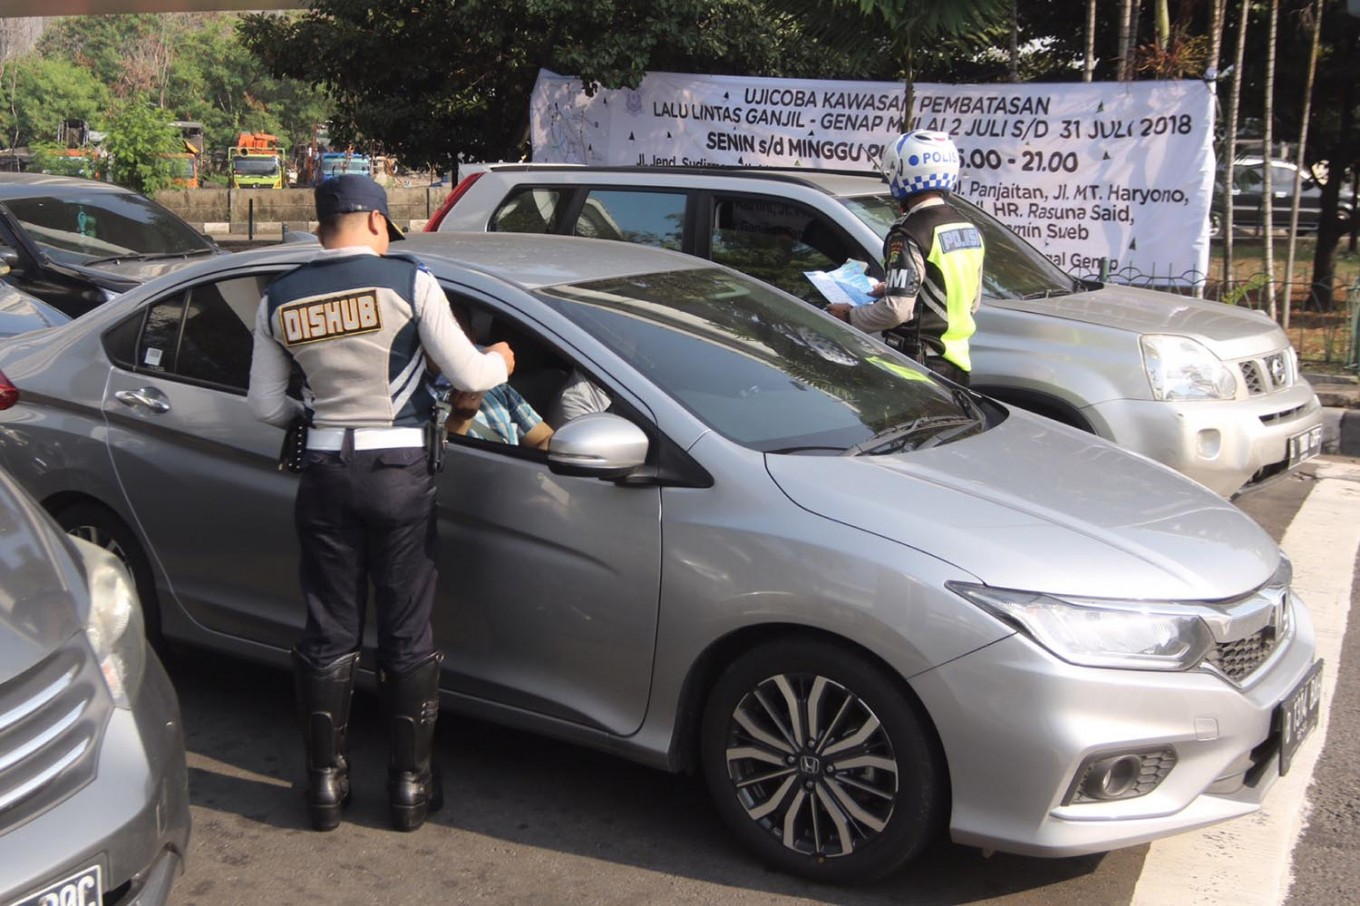 On alert: An officer of the Jakarta Transportation Agency speaks to a driver in Tomang, West Jakarta, on Monday, July 2, 2018. The capital's transportation agencies have started a one-month trial of an extended odd-even traffic policy that is expected to tackle road congestion ahead of the Asian Games in August. JP/Wendra Ajistyatama